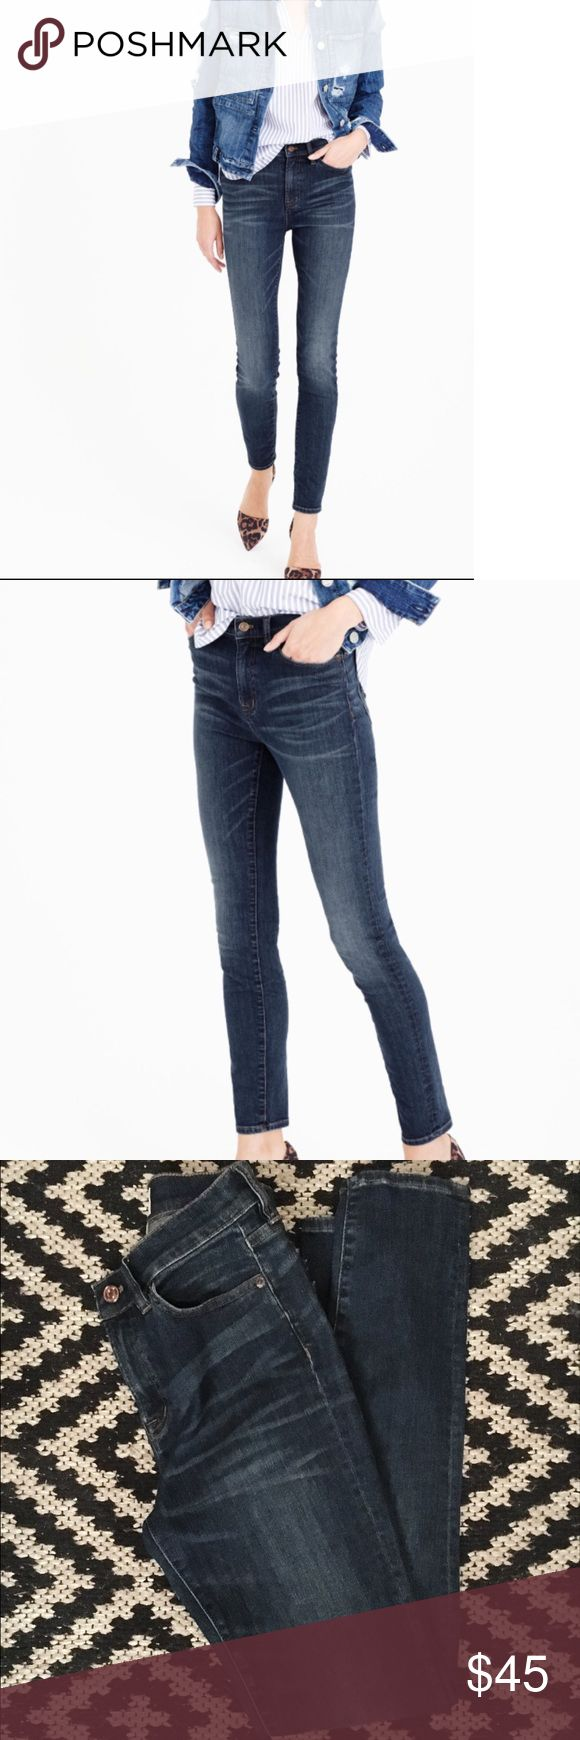 J Crew High Rise Lookout Skinnies J Crew high rise lookout jeans in a dark wash. Size 25. Skinny fit. Almost new. I can't remember if I've worn or not so I didn't list as NWOT. There's no pilling, stains, snags or holes. These jeans are seriously the best and such a staple piece to own from J Crew. J. Crew Jeans Skinny